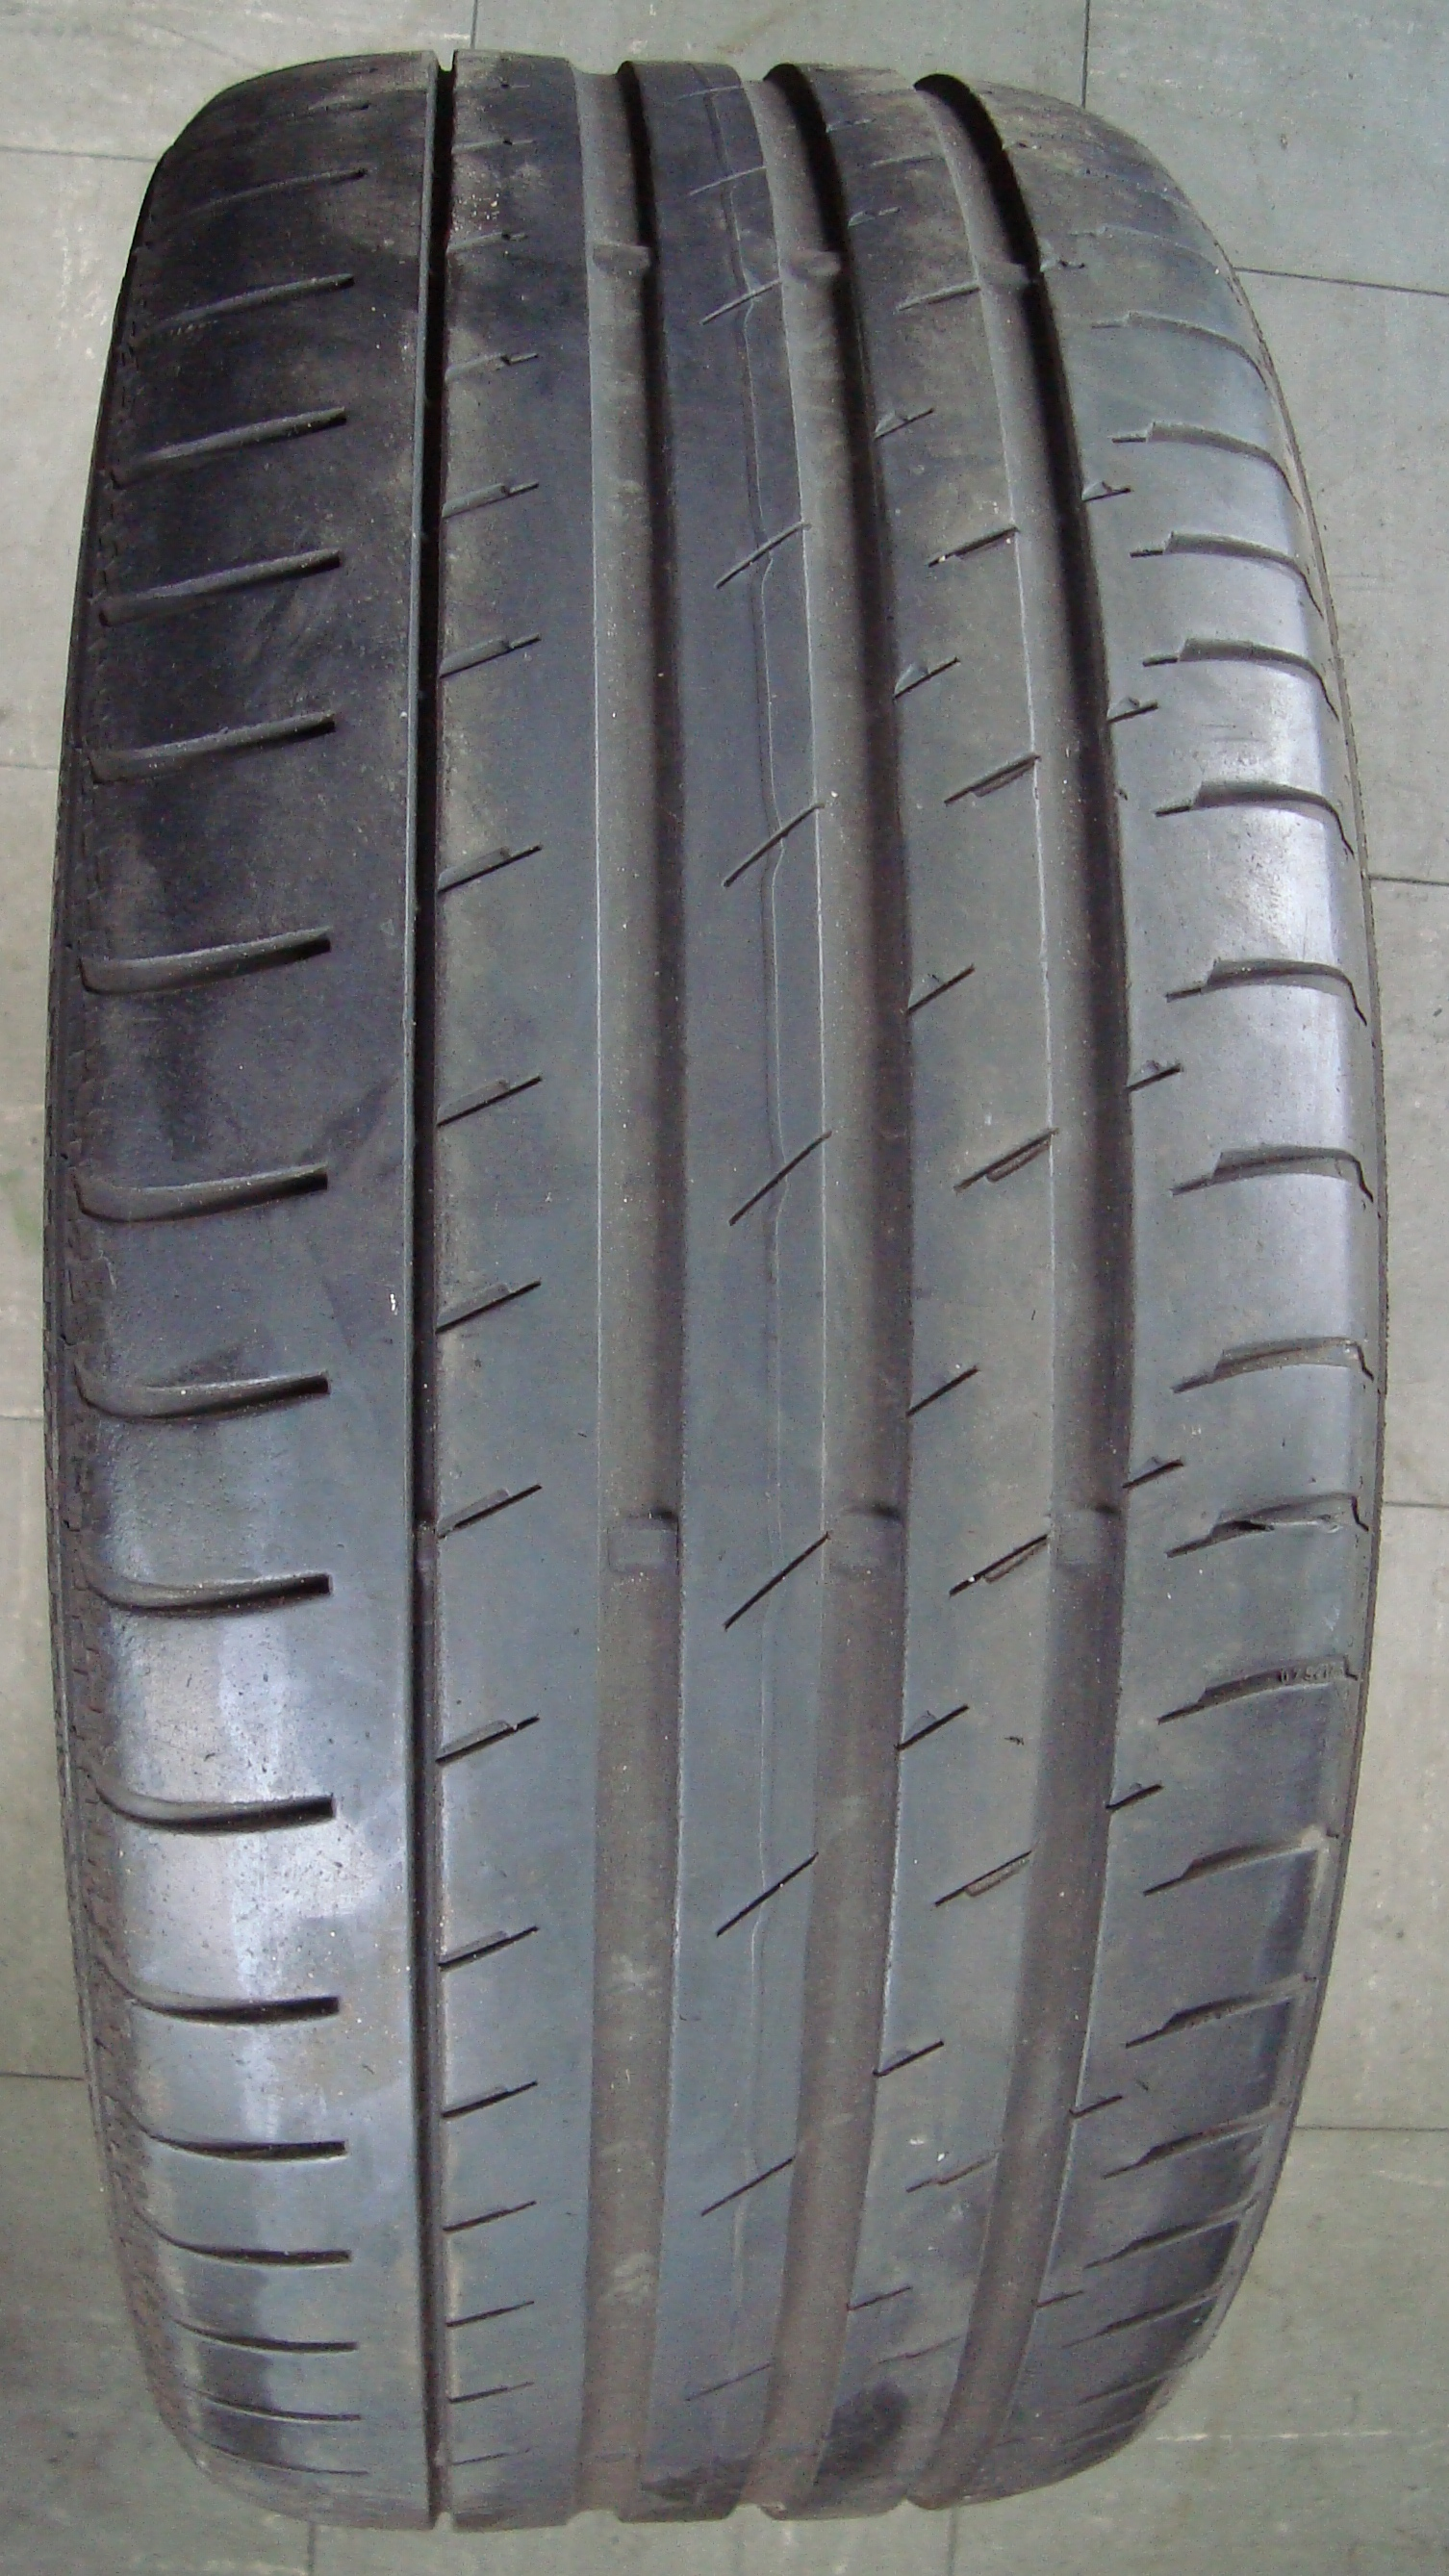 2x Sommerreifen Continental ContiSportContact 5P 235//40 ZR18 95Y MO 6 mm DOT 16